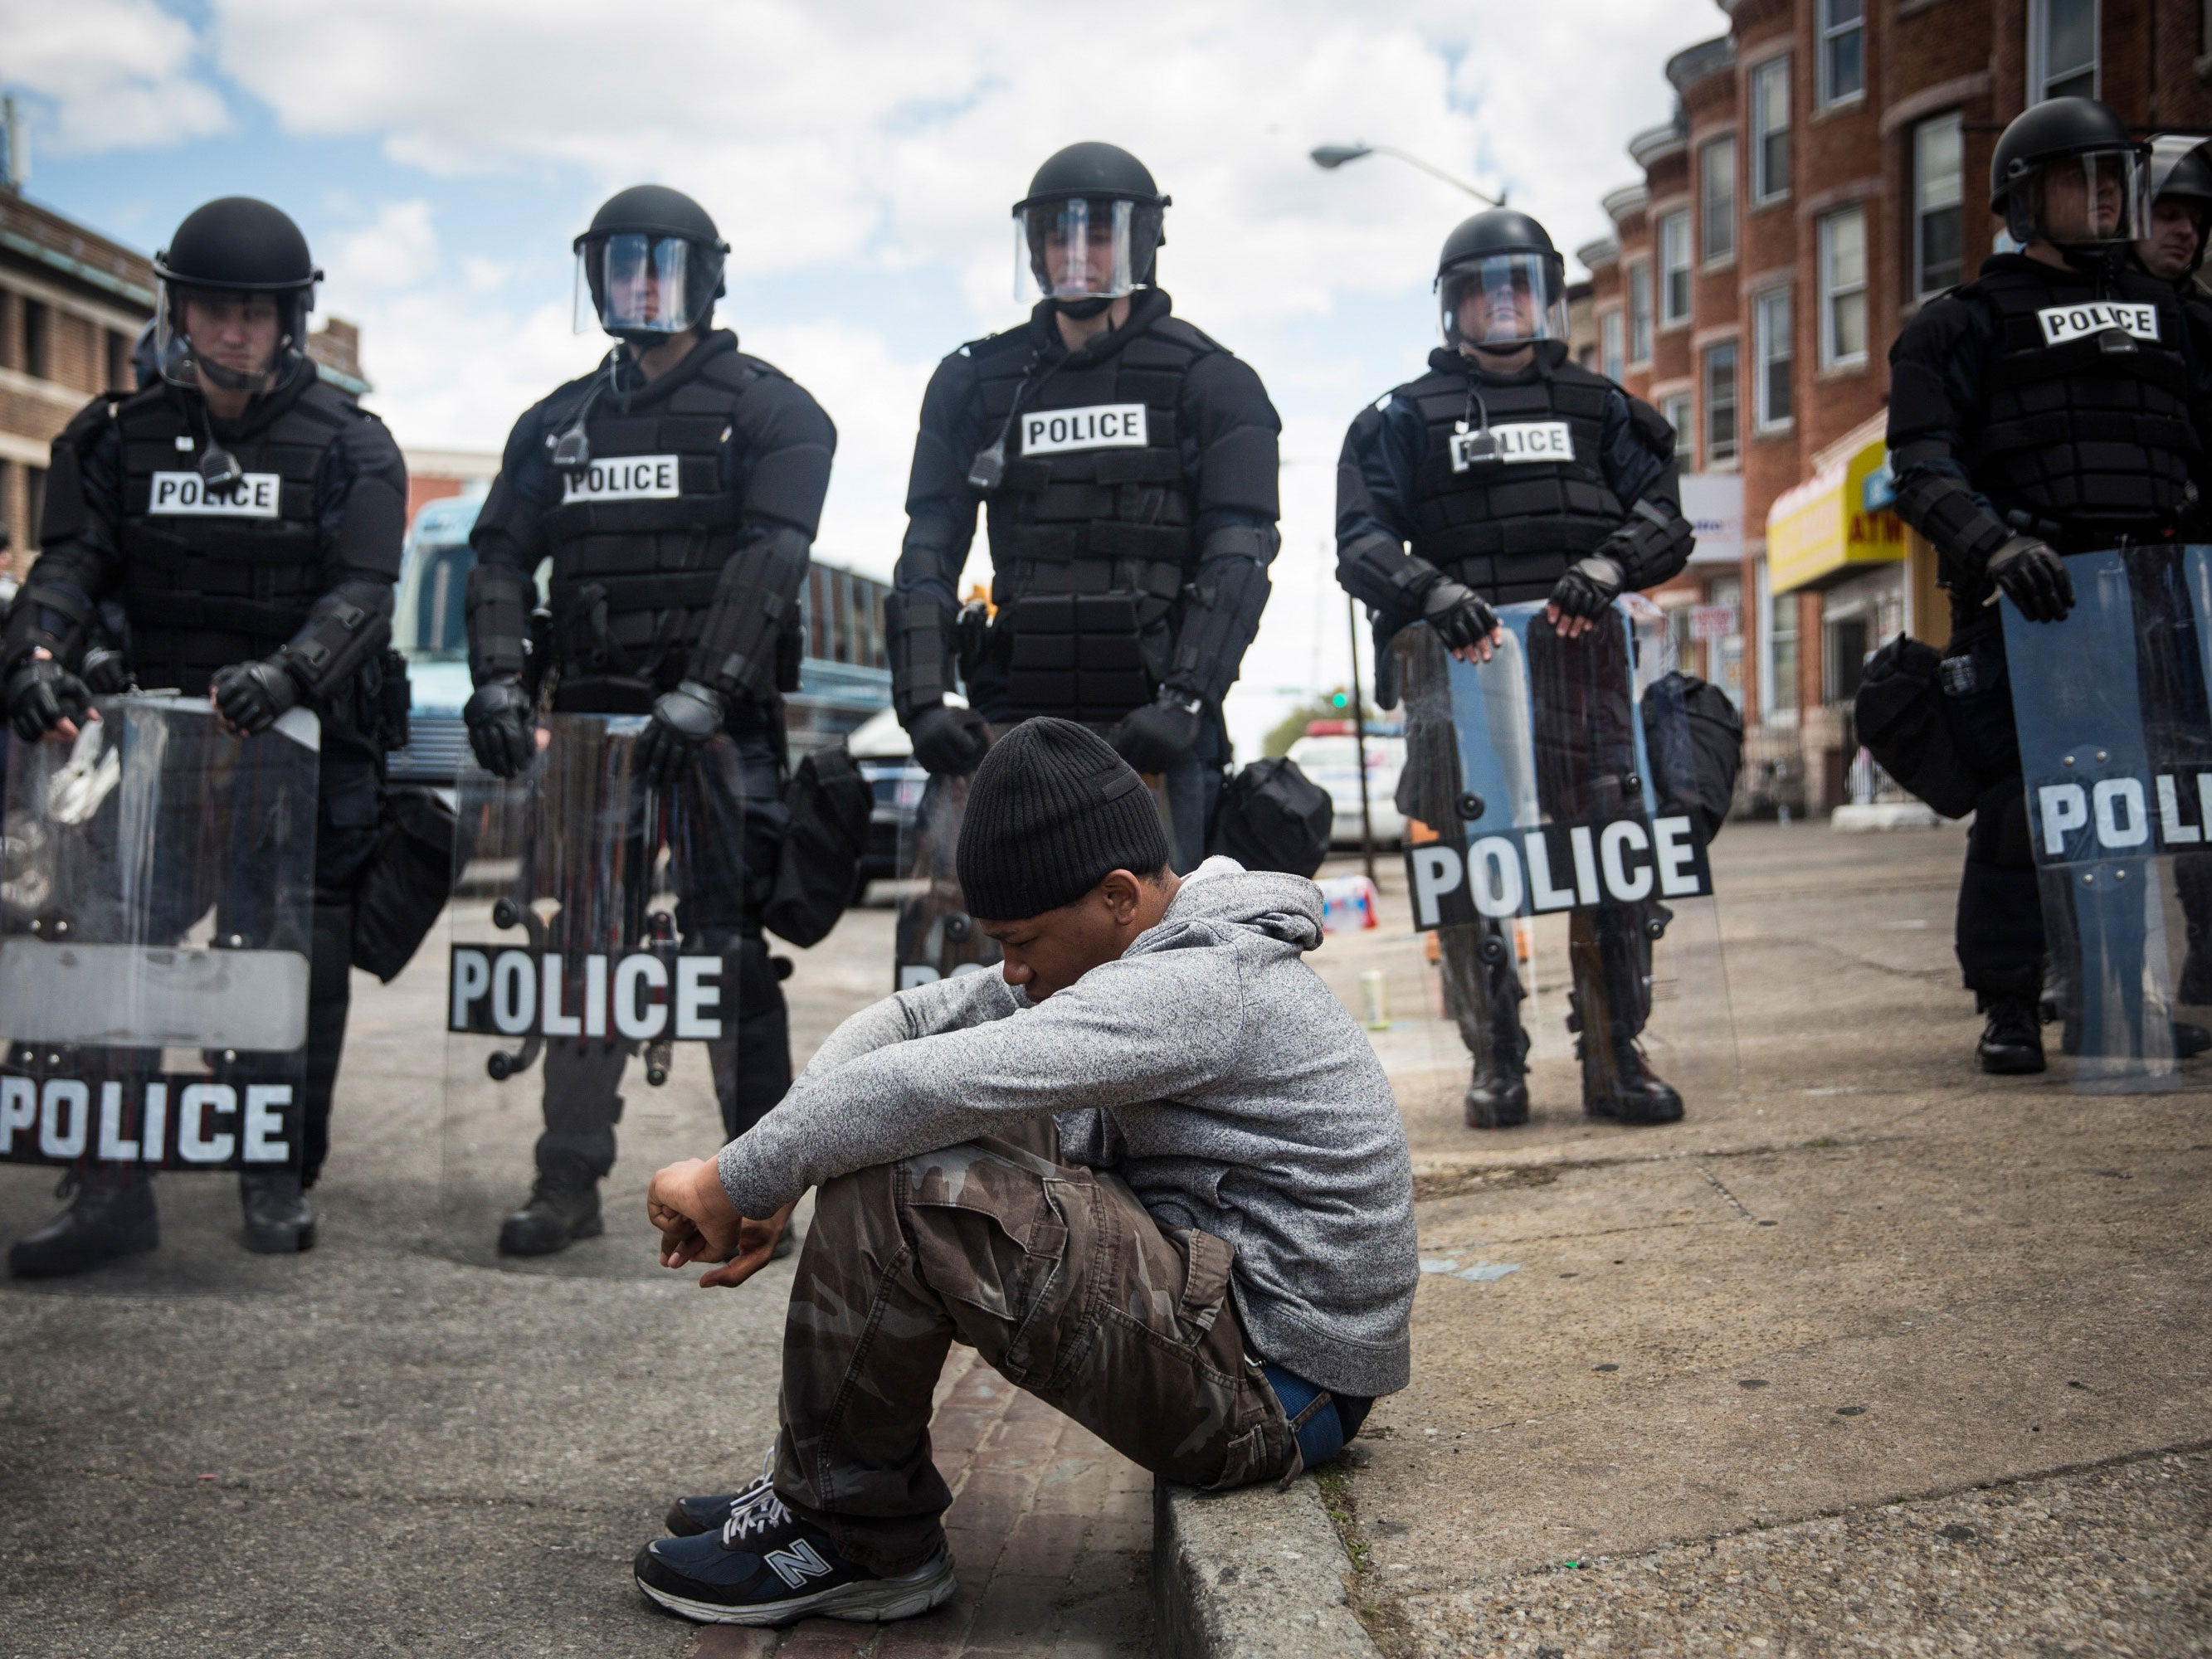 the issue of the police becoming militarized and the ethical and constitutional role of the police